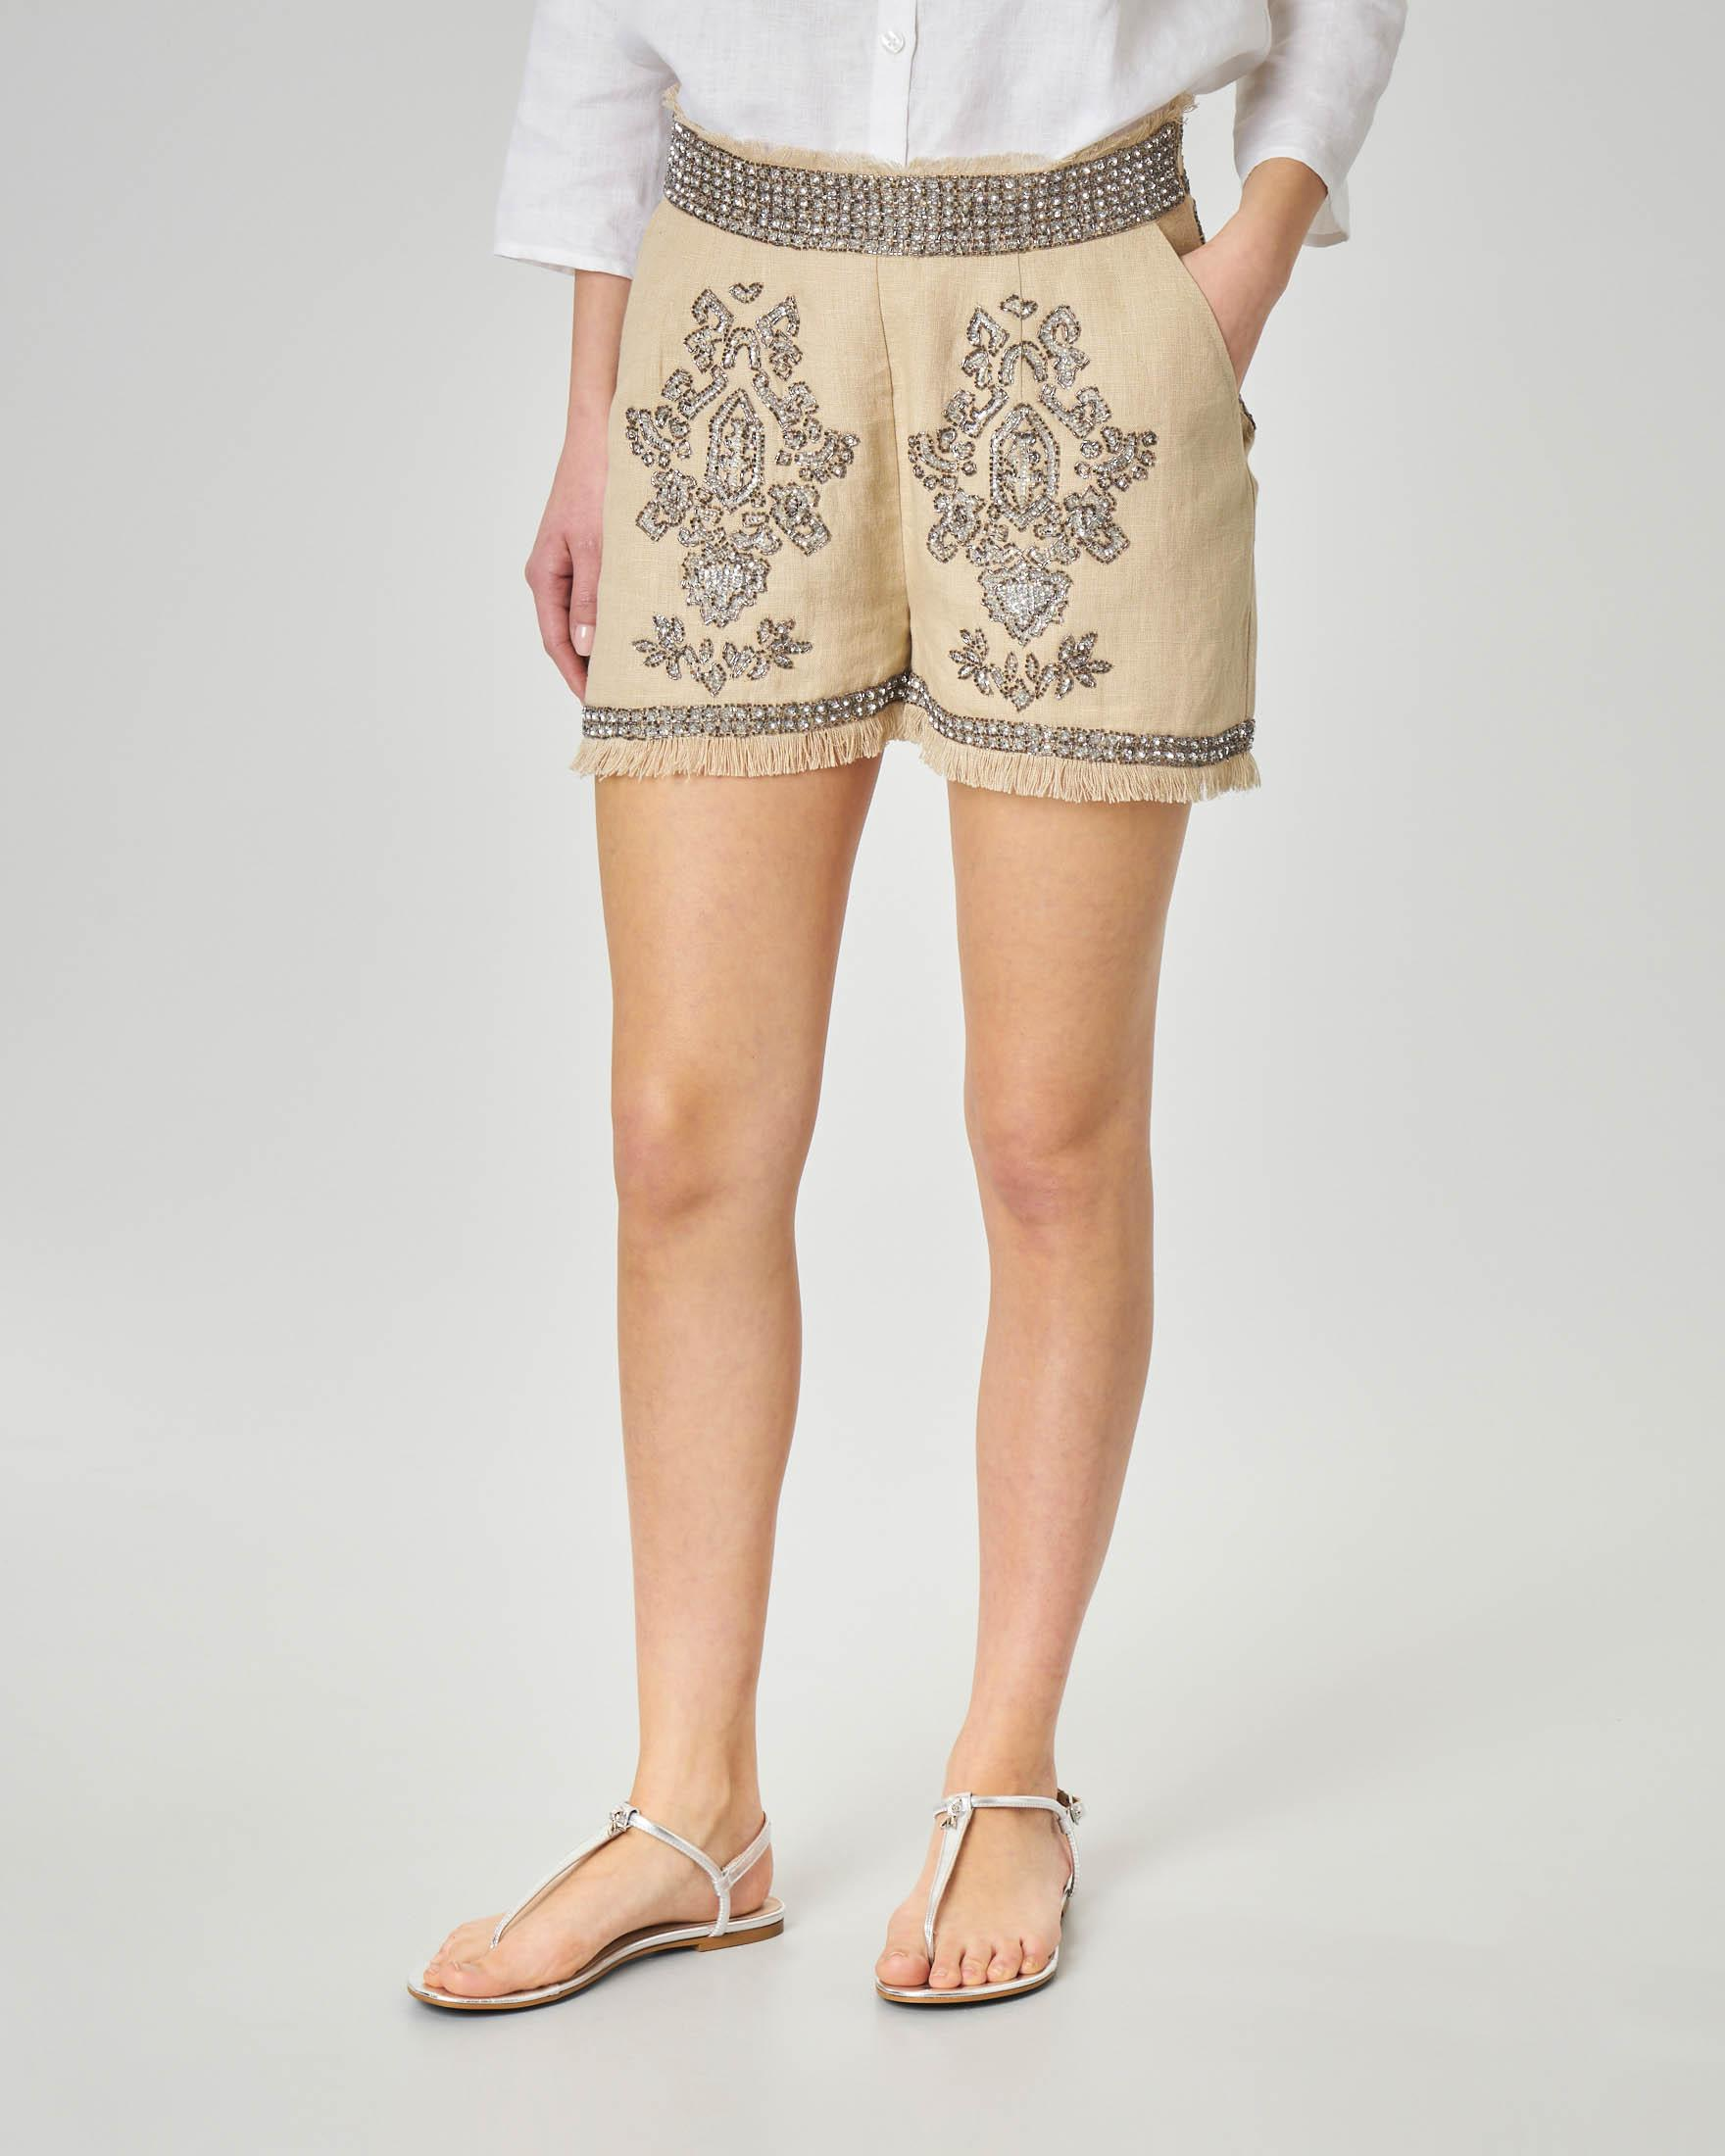 Short in lino color beige con ricami in paillettes e perline